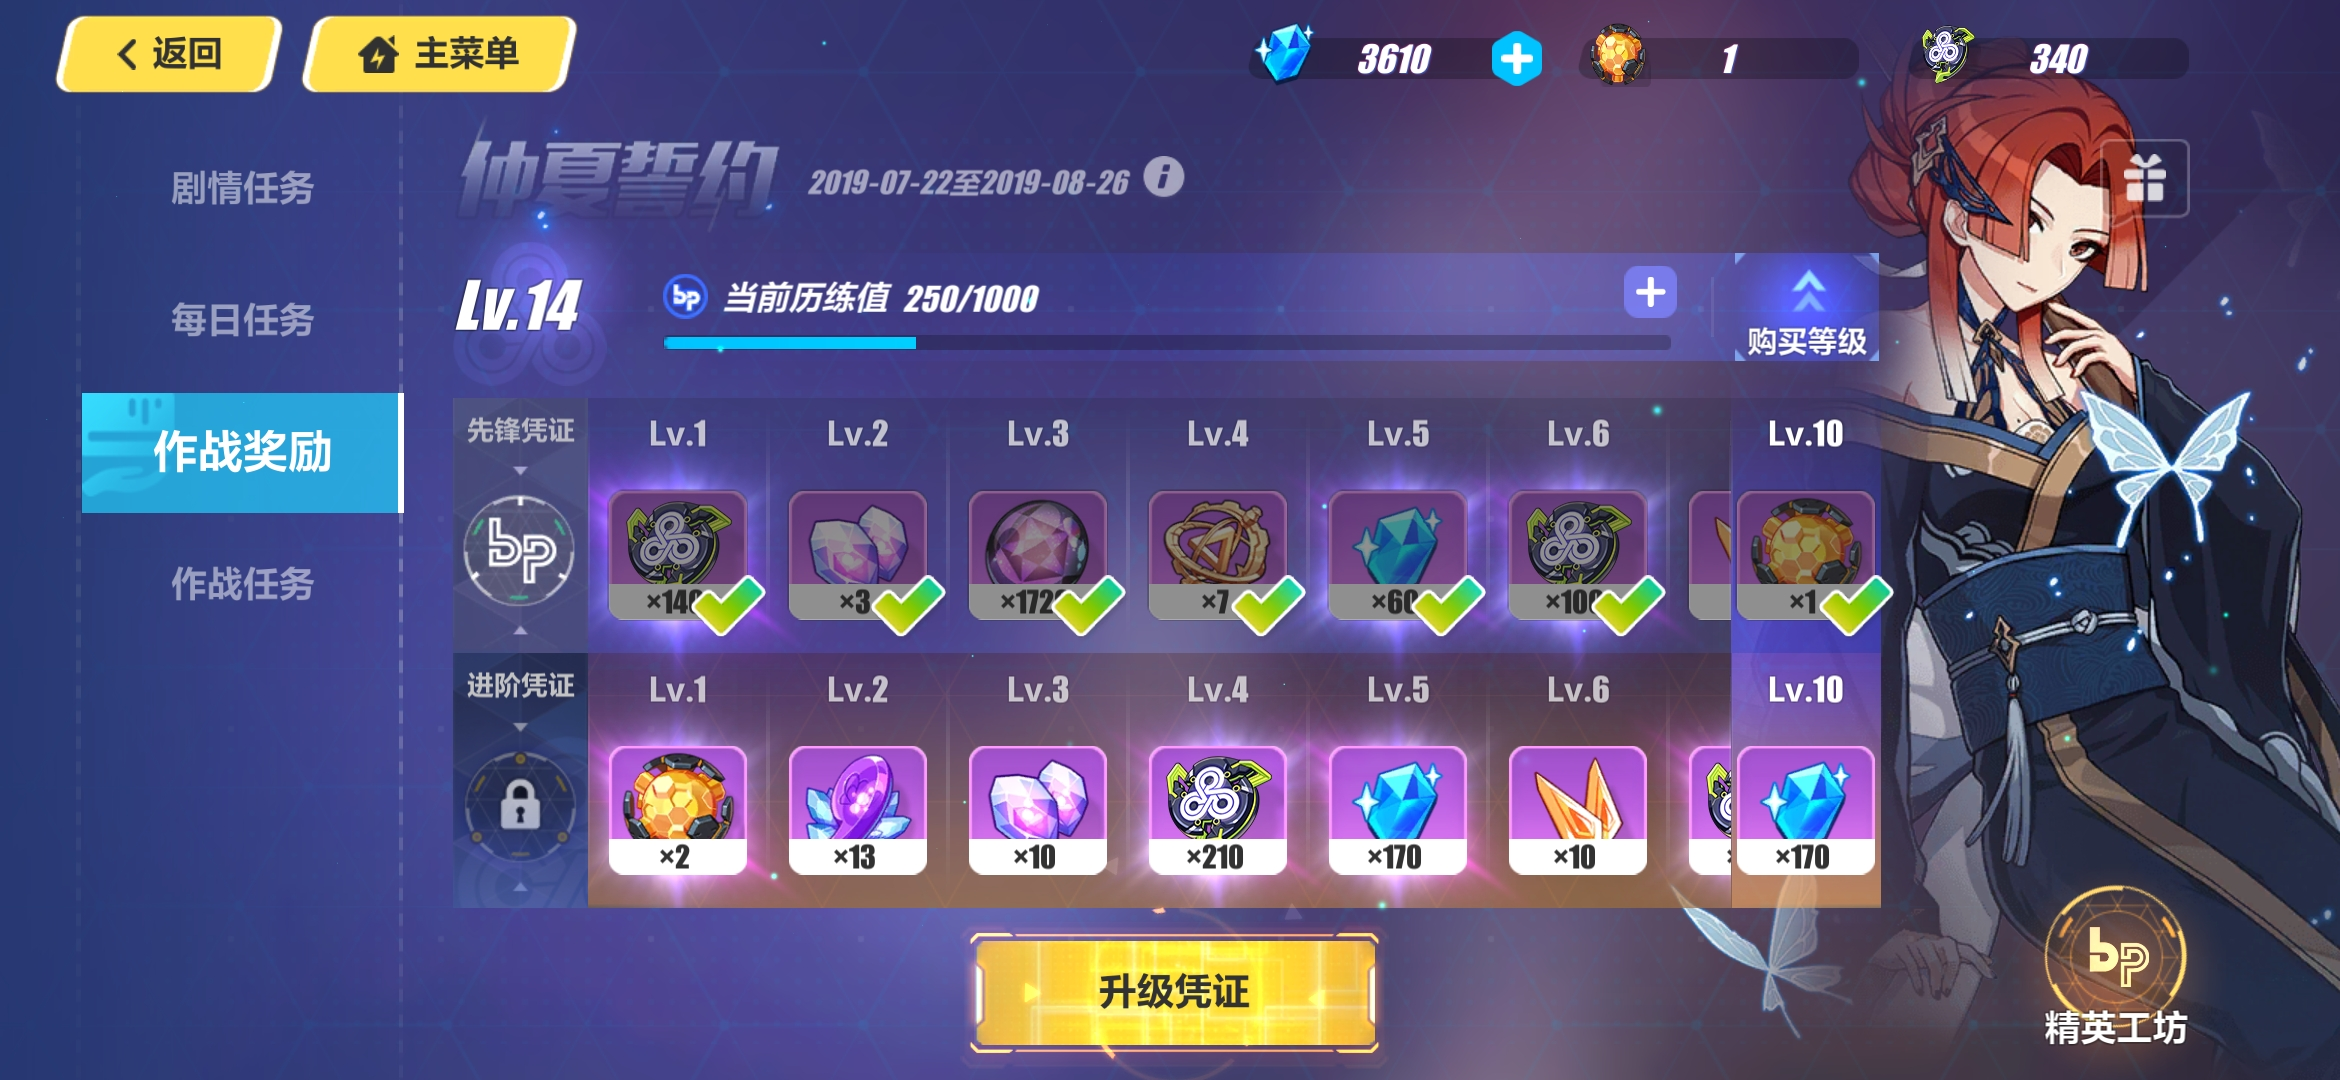 Le Battle Pass en Chine